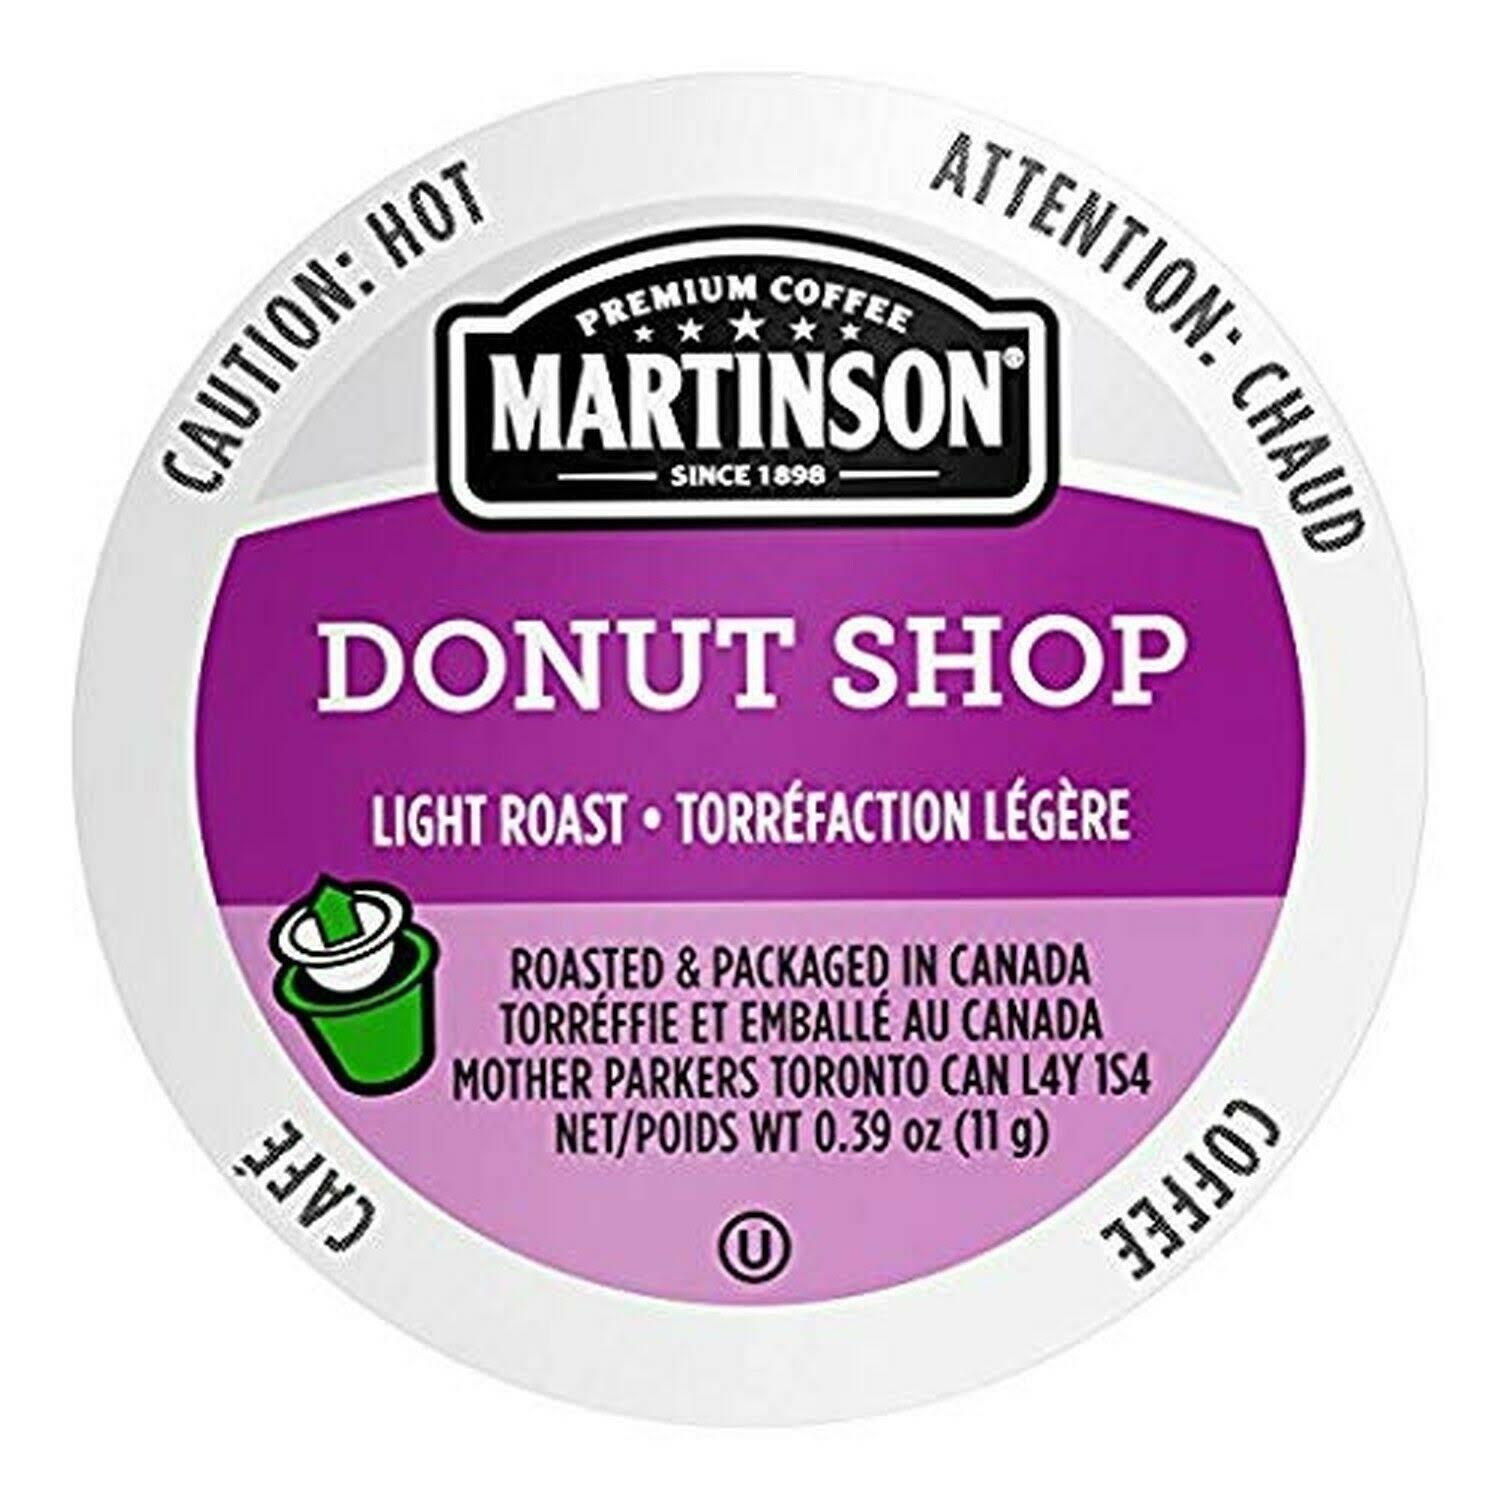 Martinson Single Serve Coffee Capsules - Donut Shop, 24ct